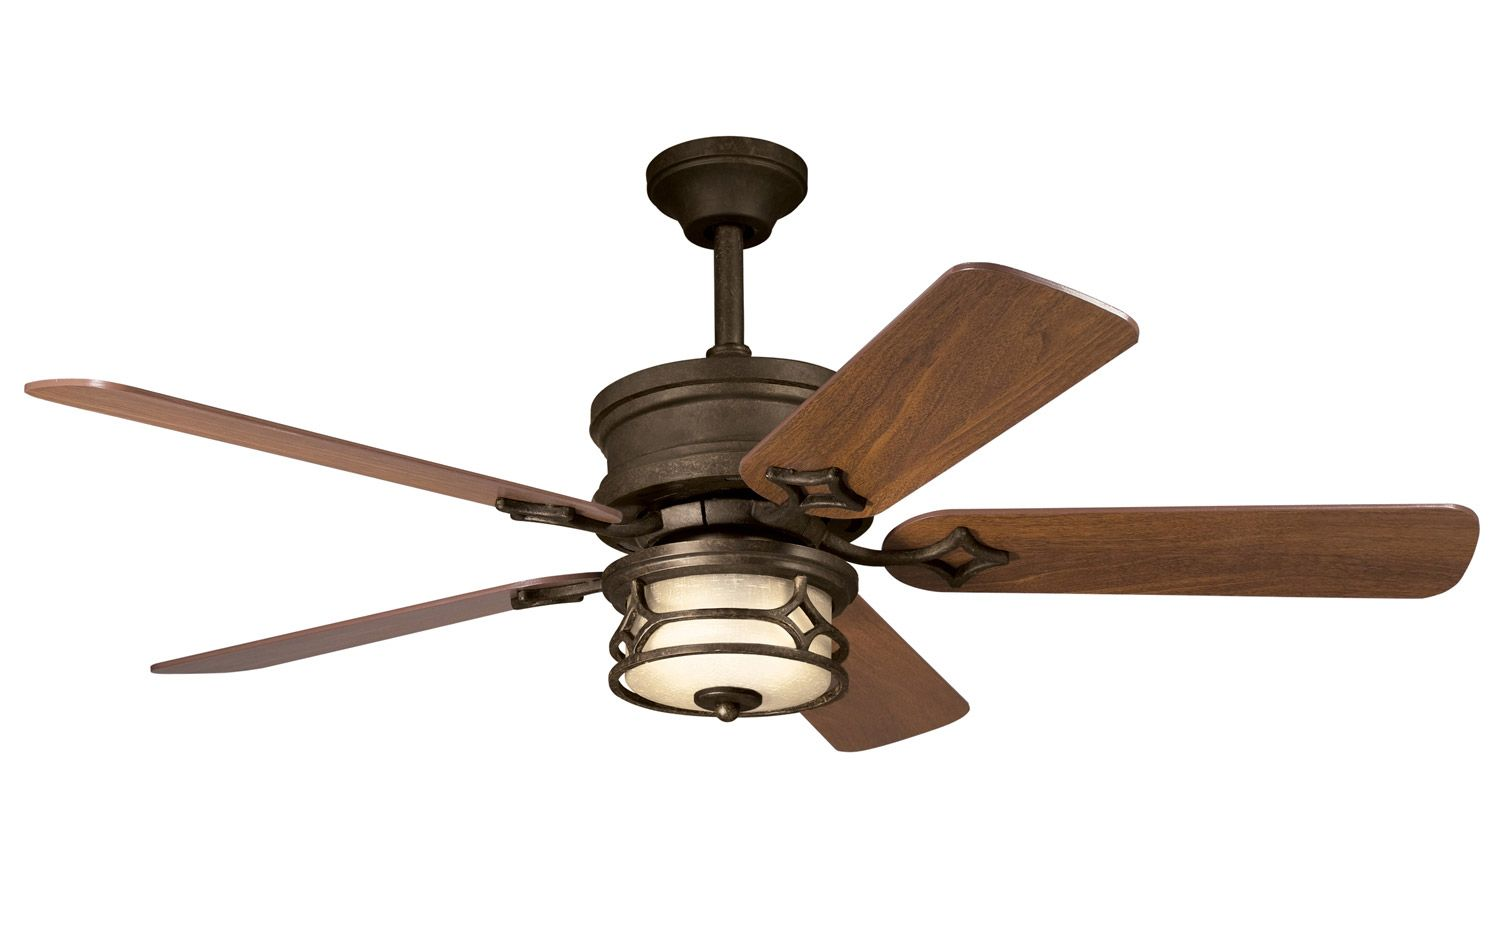 Tiffany Style Ceiling Fans Craftsman Mission Chicago Ceiling Fan Kichler 300001agz Ceiling